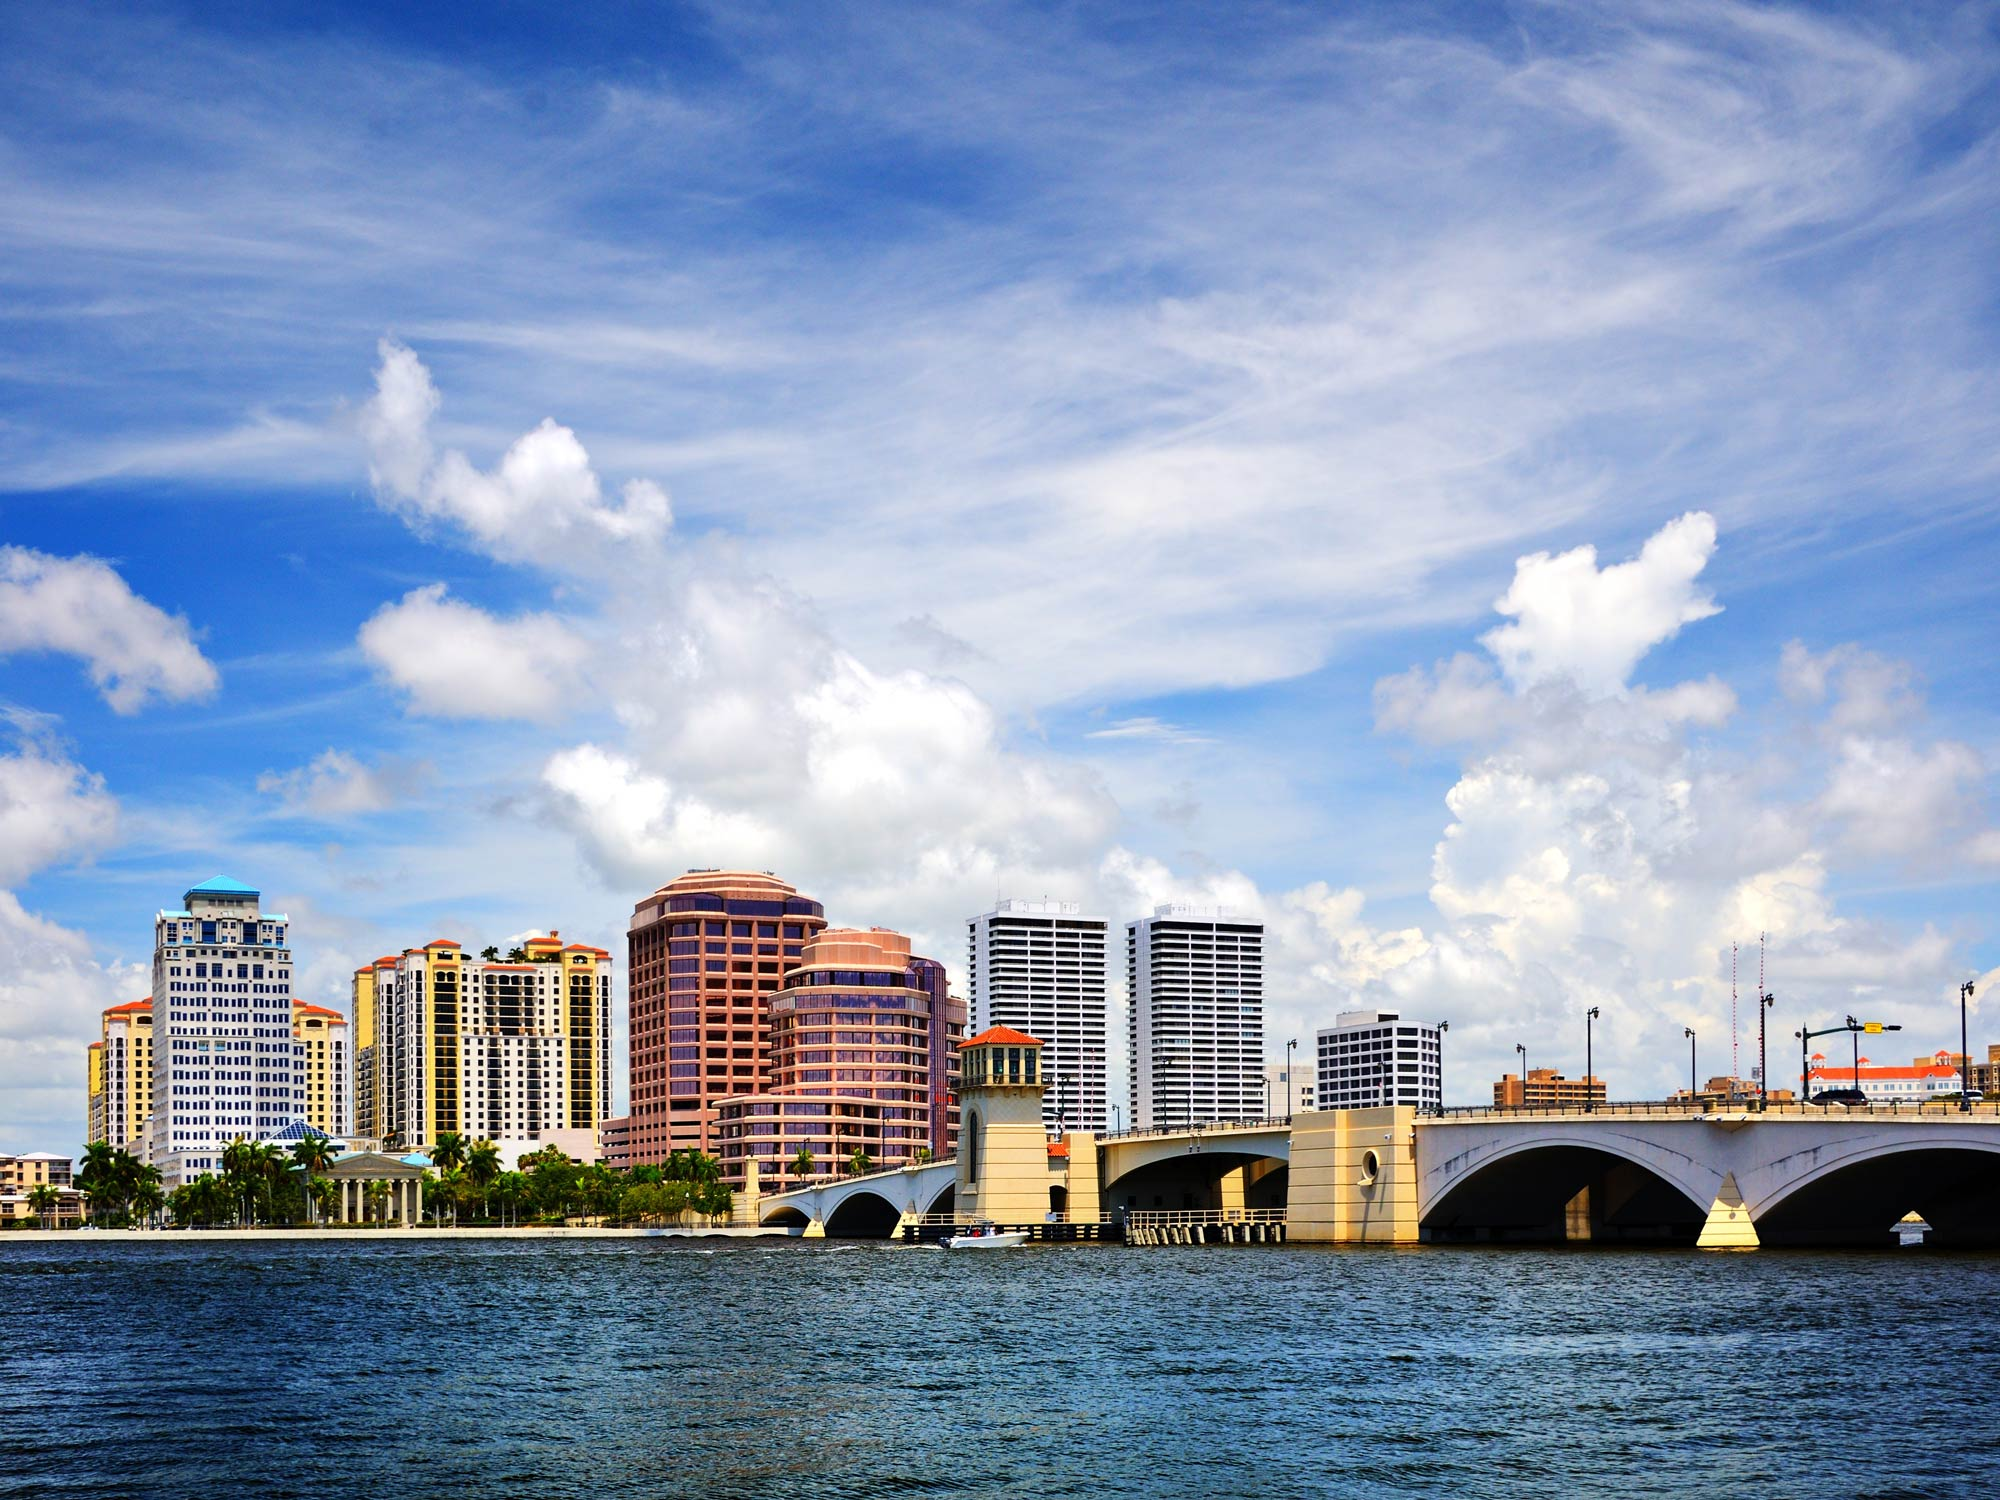 West Palm Beach skyline, shot from the water during the day